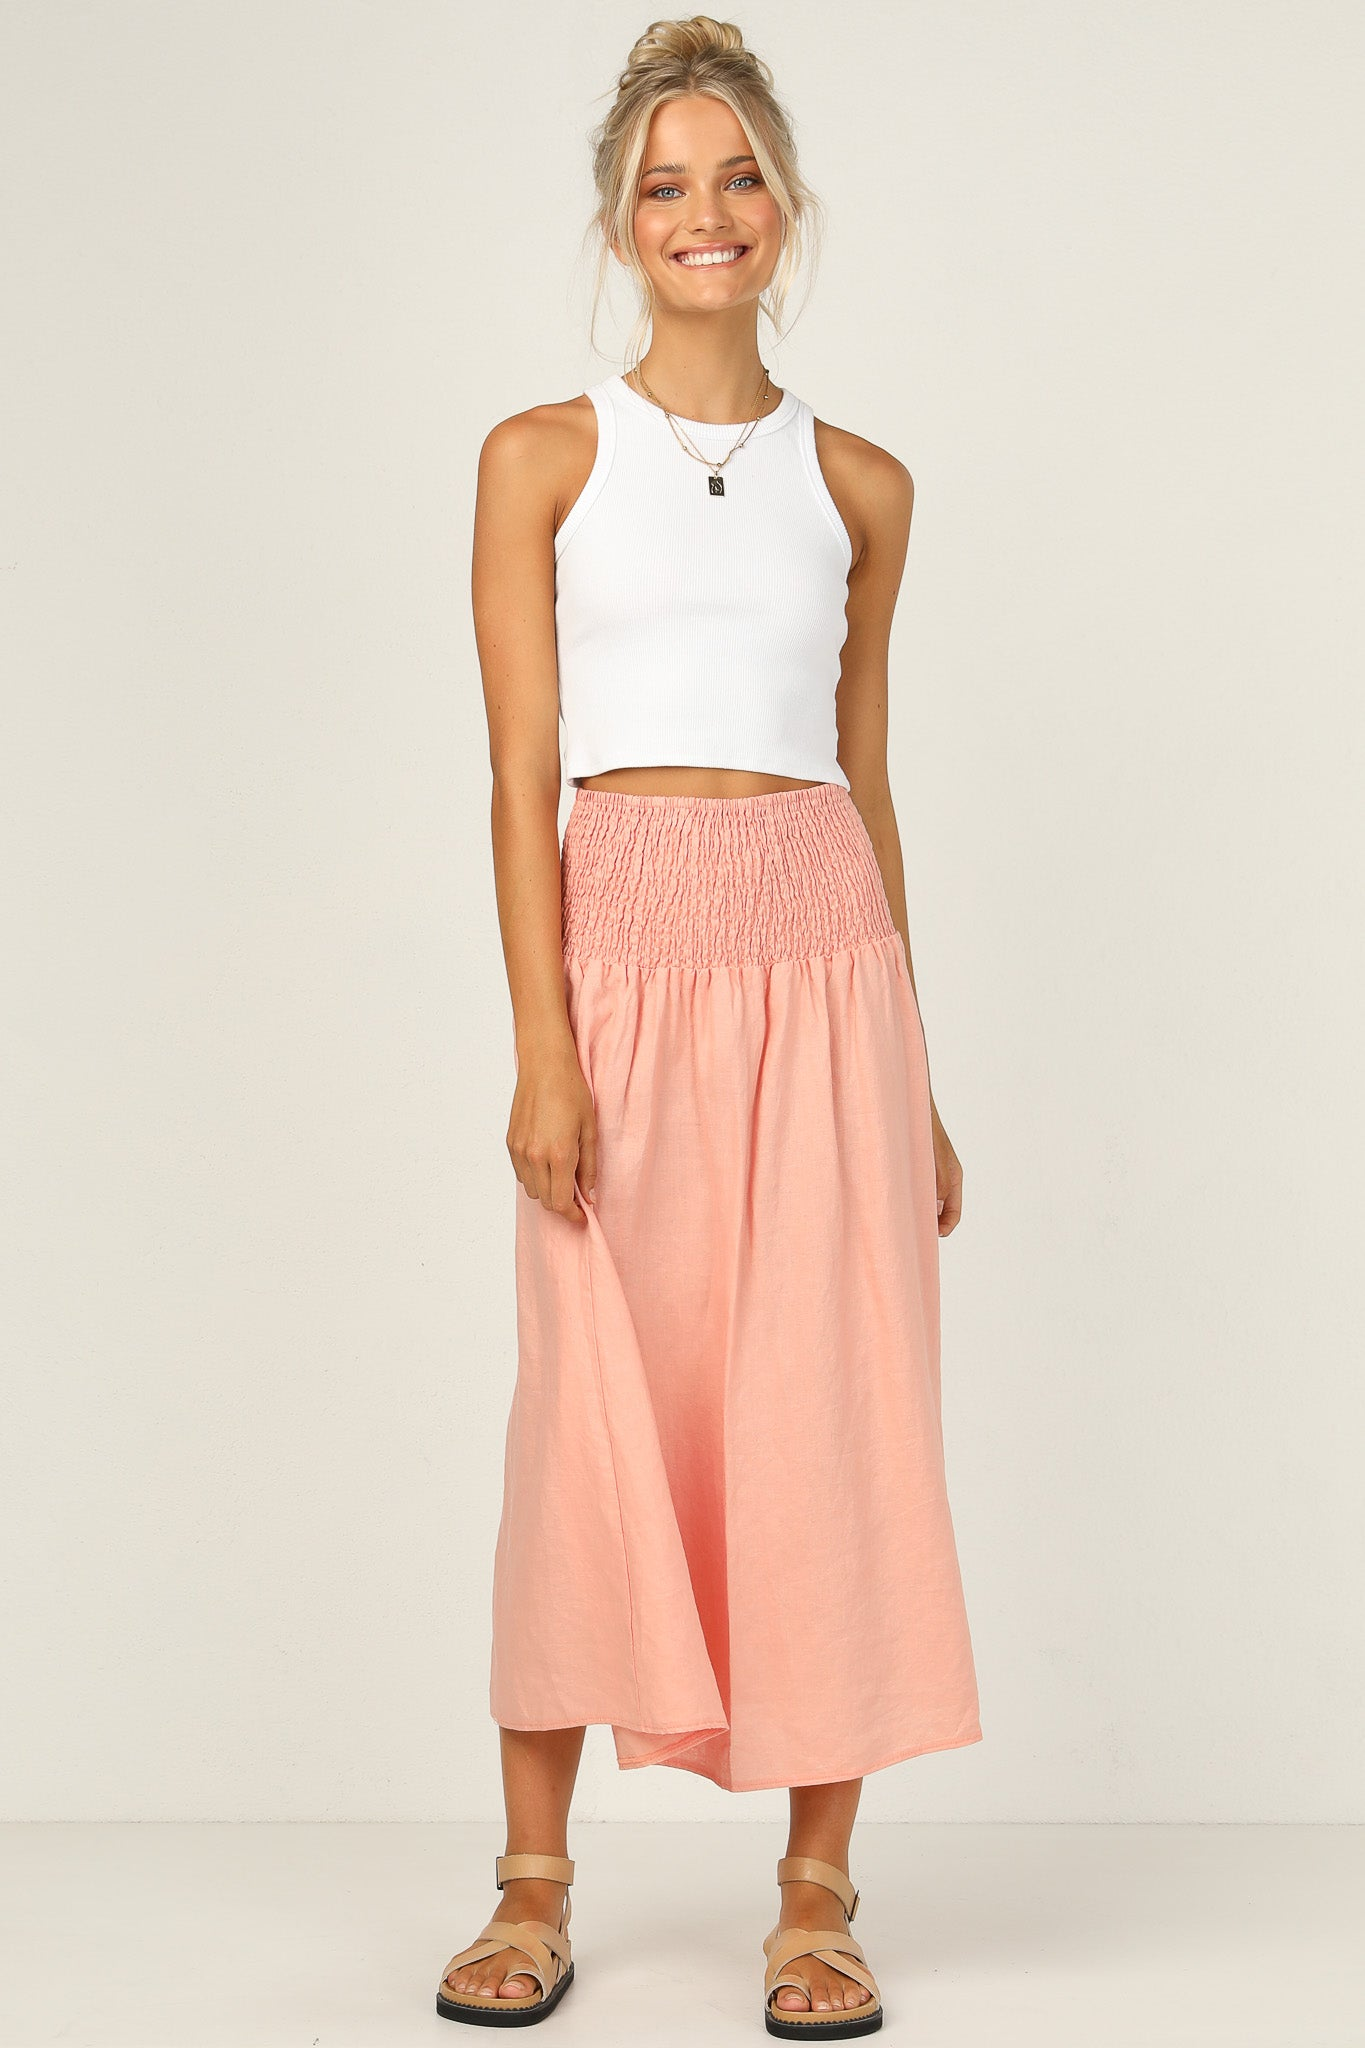 Adelle Skirt (Peach)